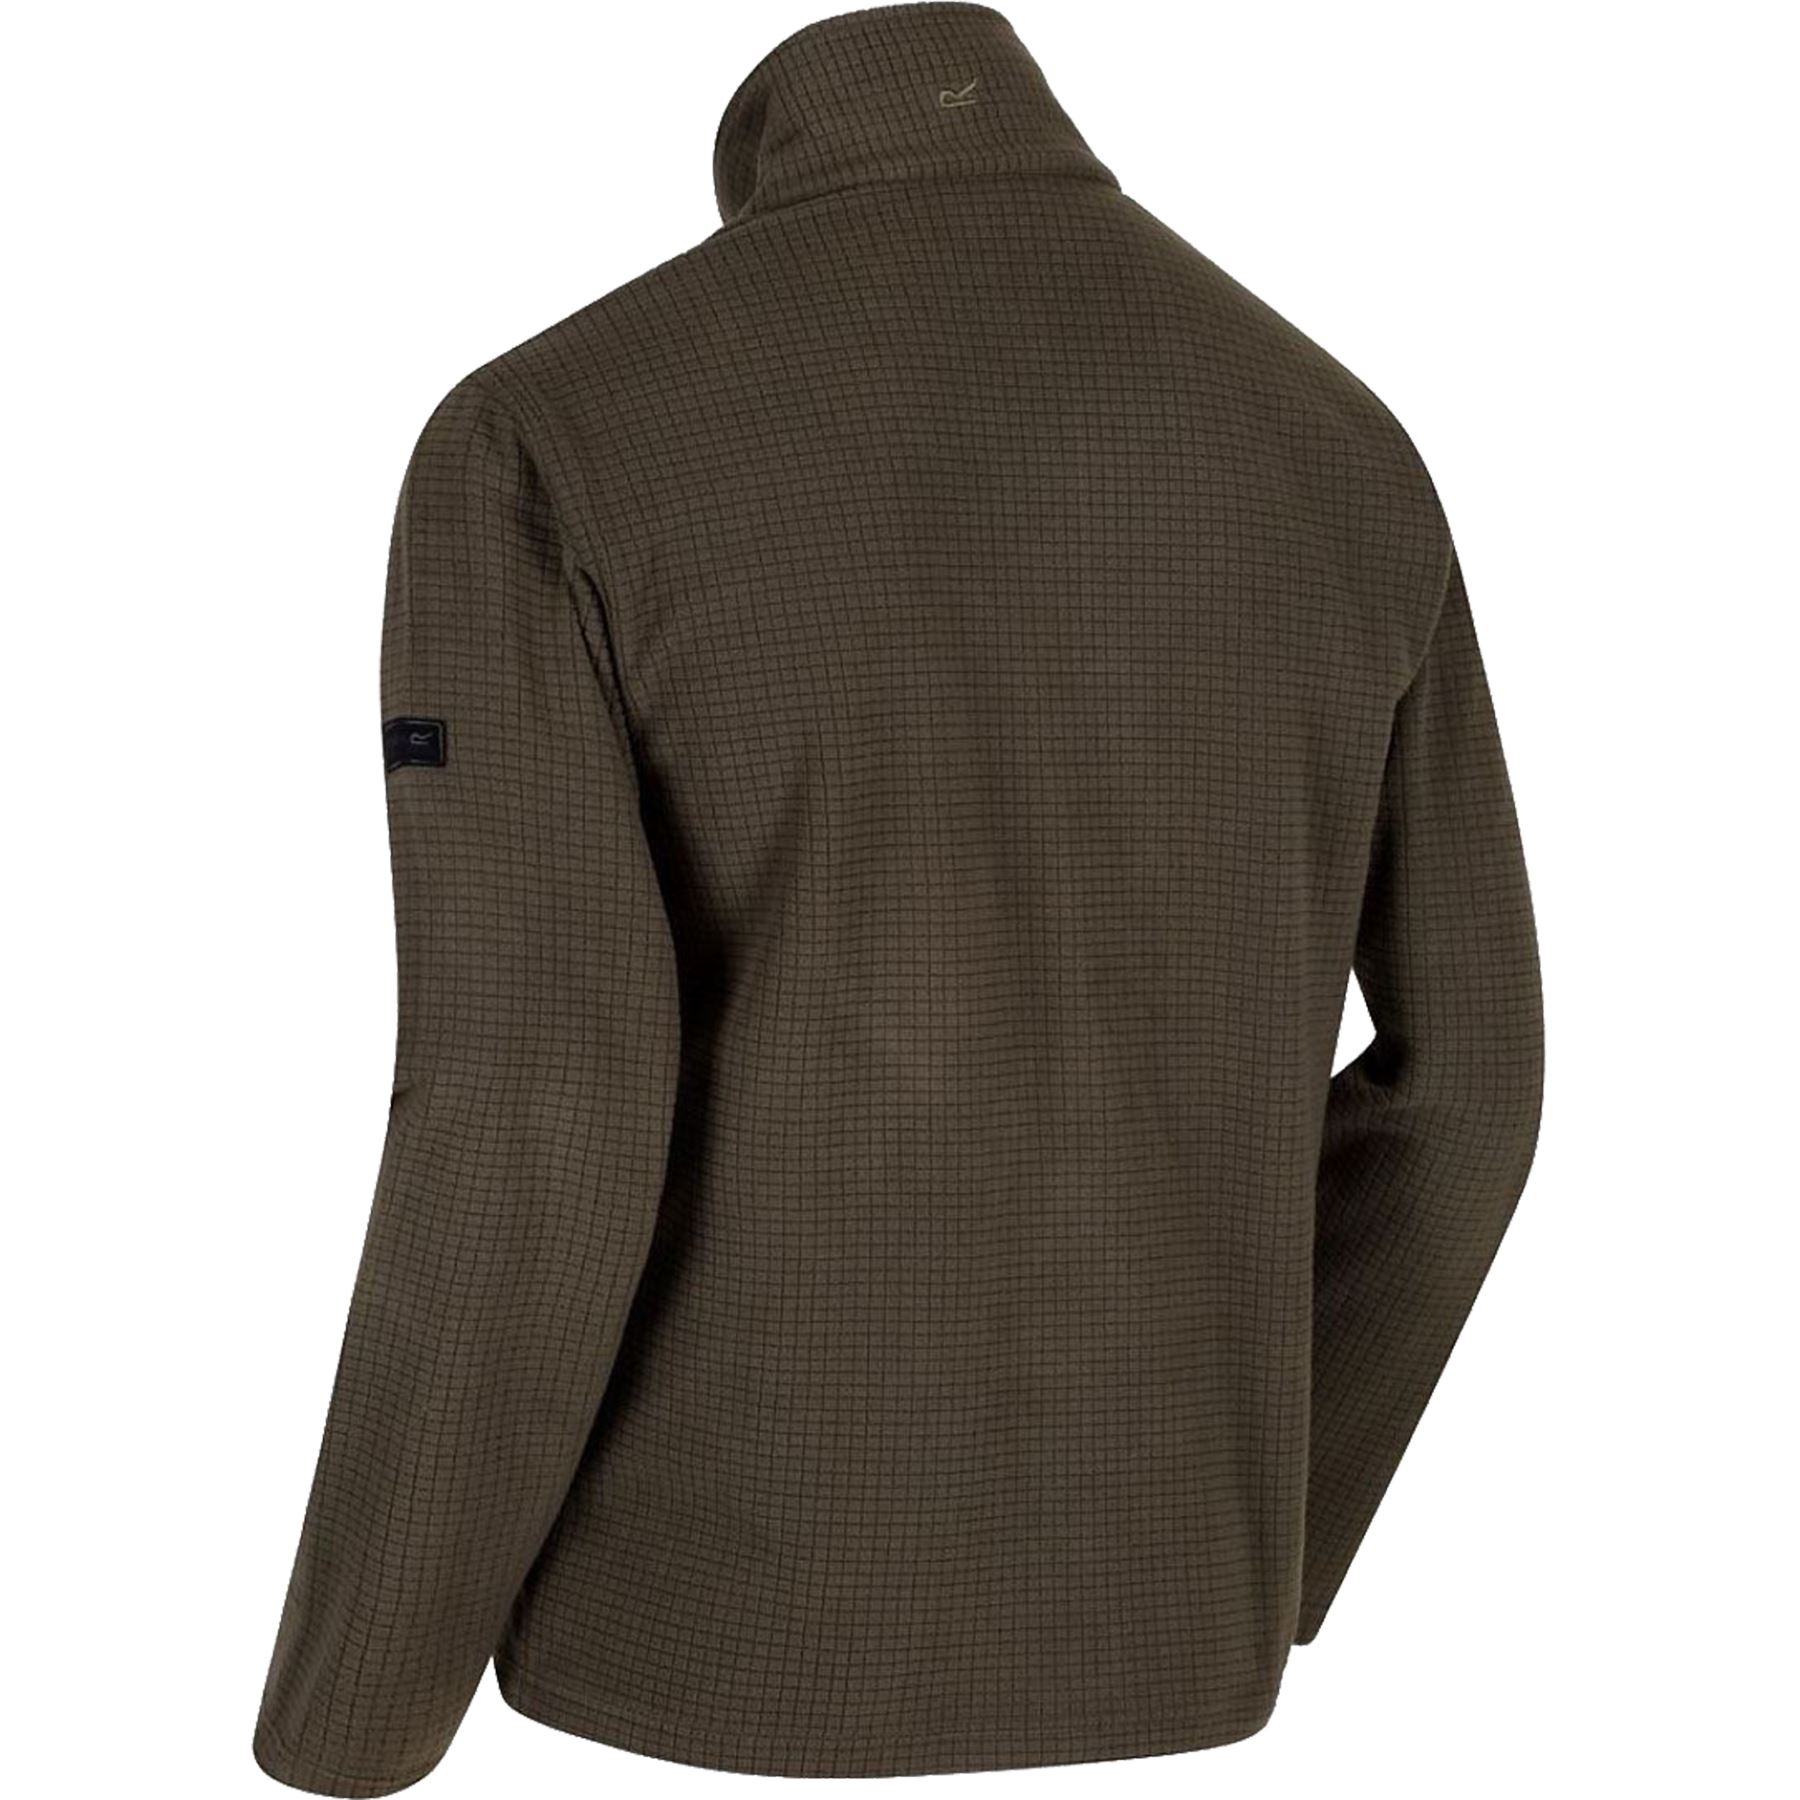 Mens-Regatta-Textured-Lightweight-Micro-Half-Zip-Fleece-Top-Jacket-Sizes-S-4XL thumbnail 3